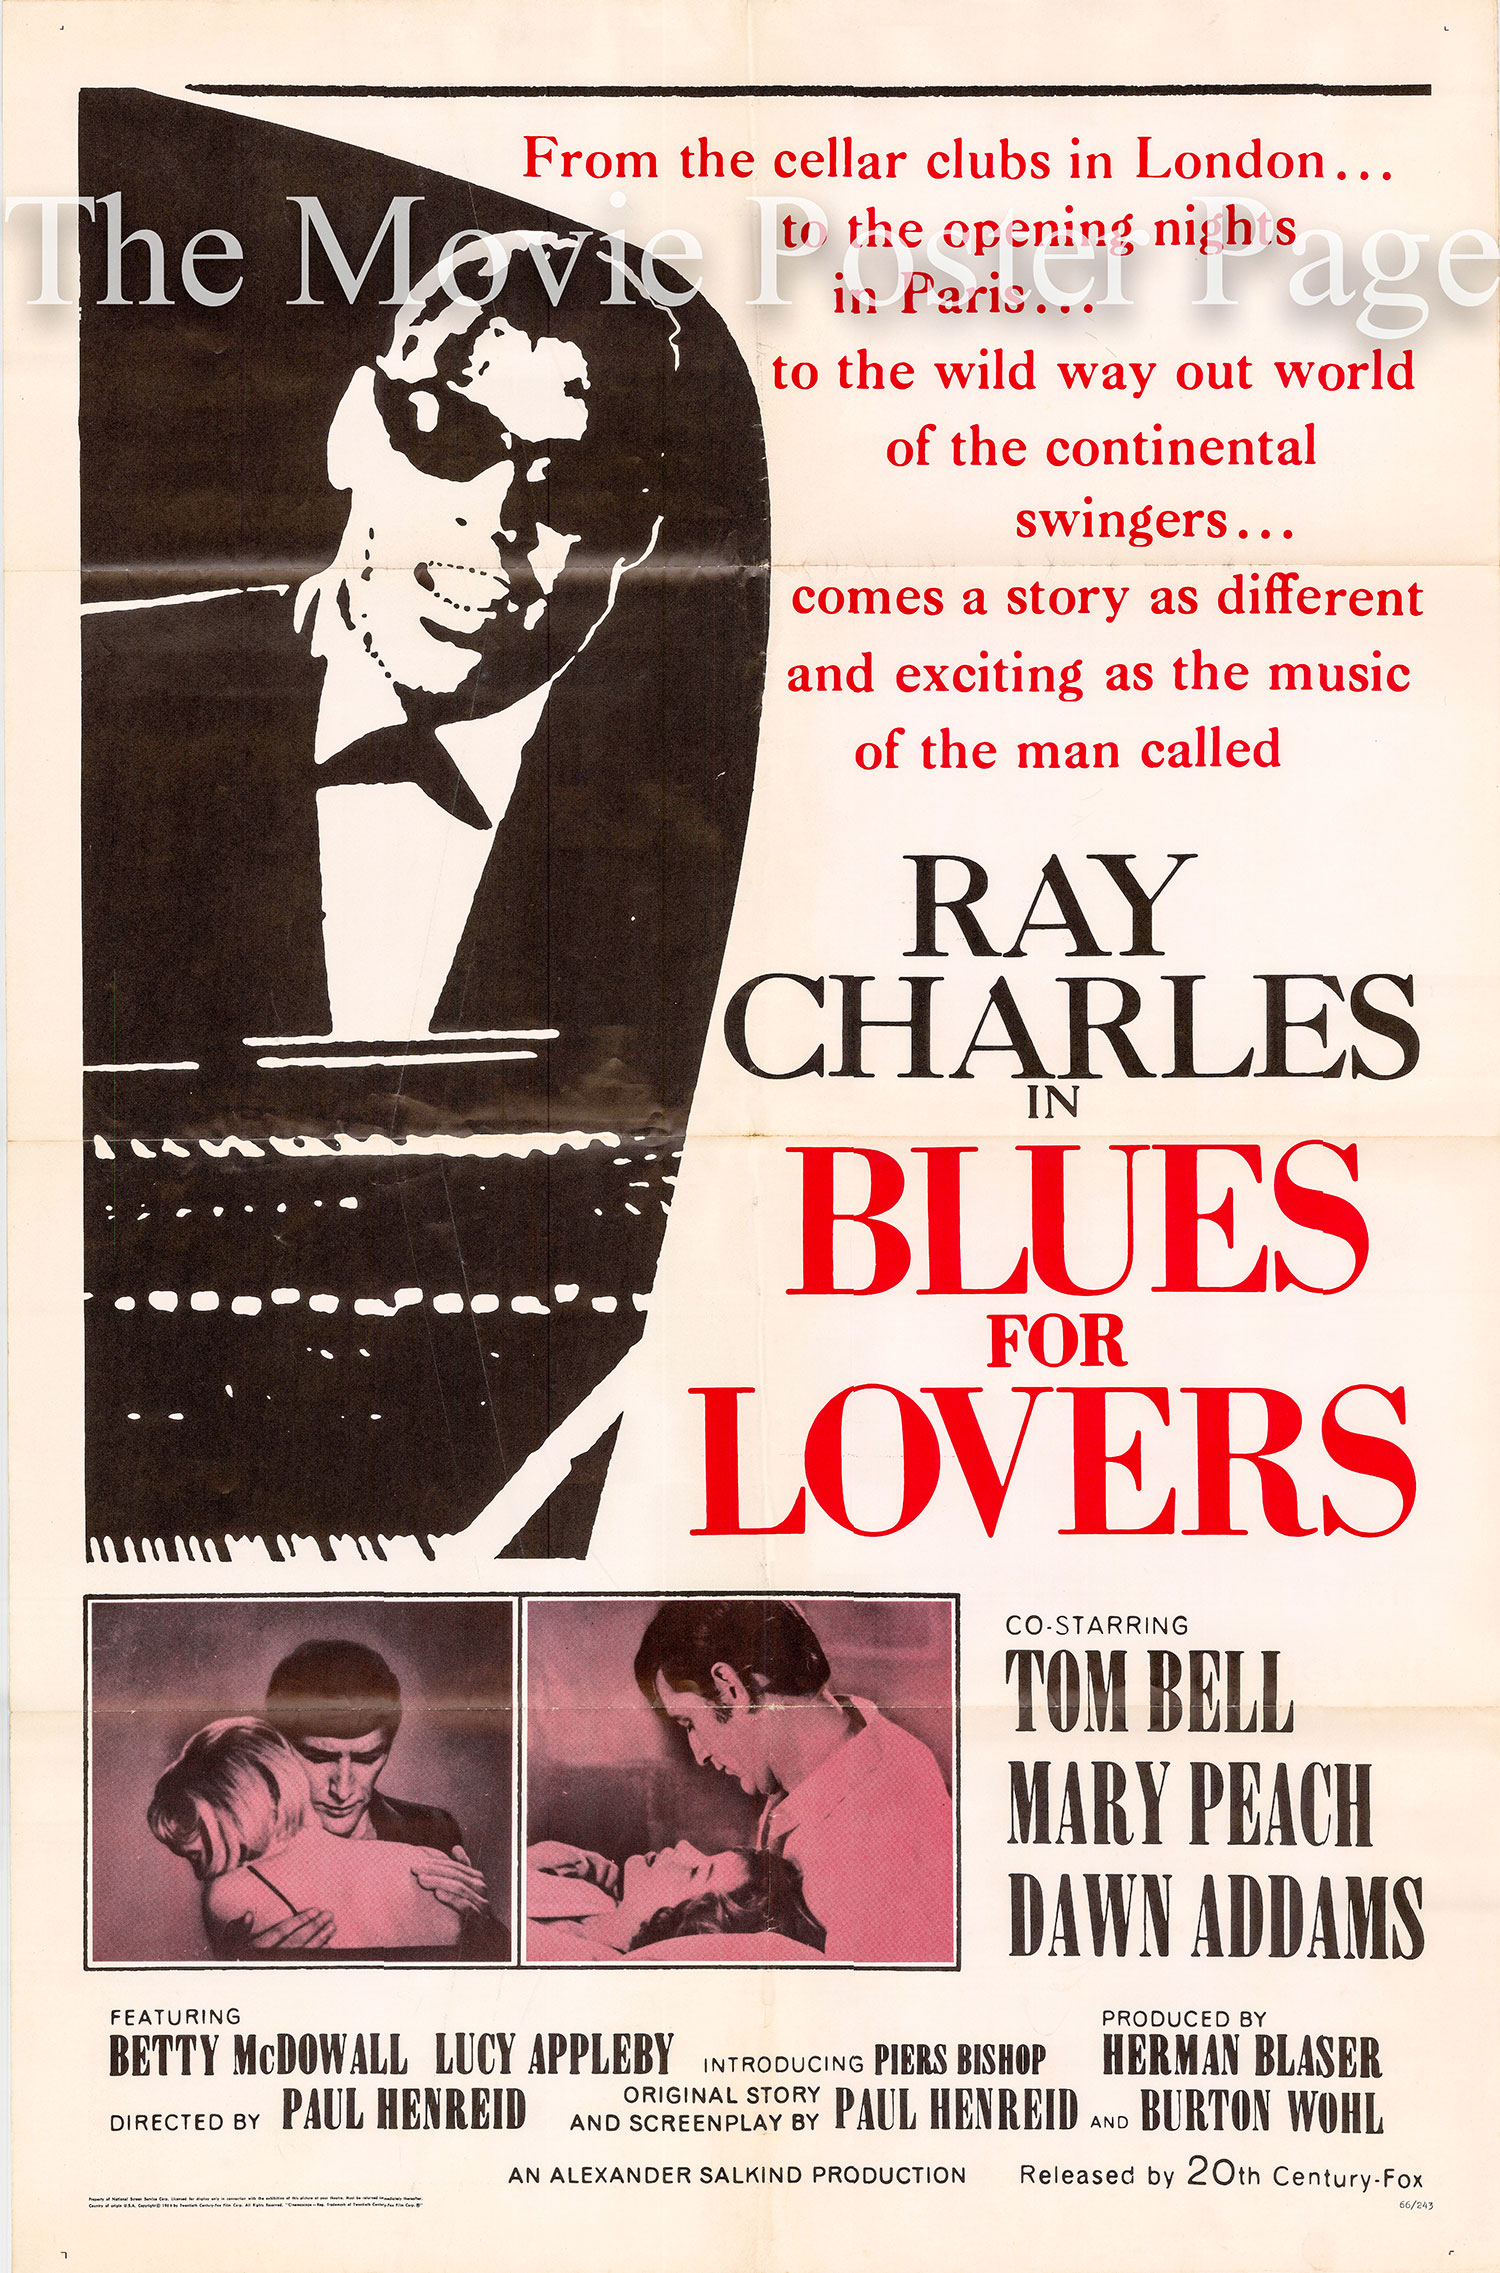 Pictured is a US one-sheet promotional poster for the 1966 > Paul Henreid film Blues for Lovers starring Ray Charles.